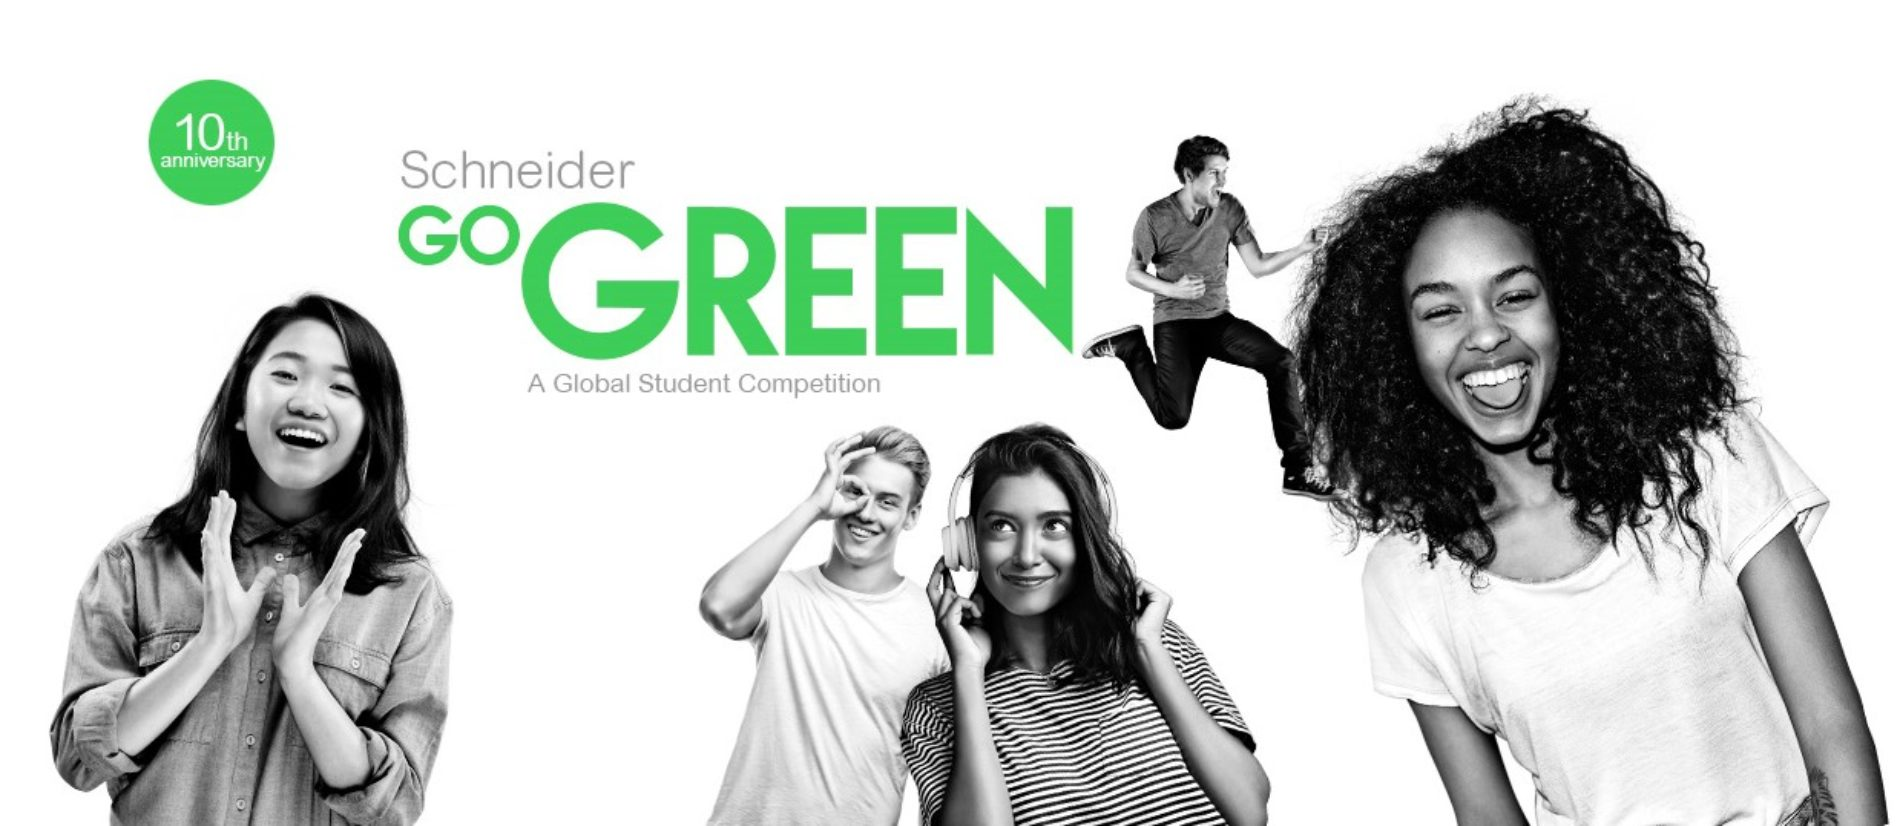 Convocatoria para estudiantes colombianos a inscribirse en el Go Green 2020